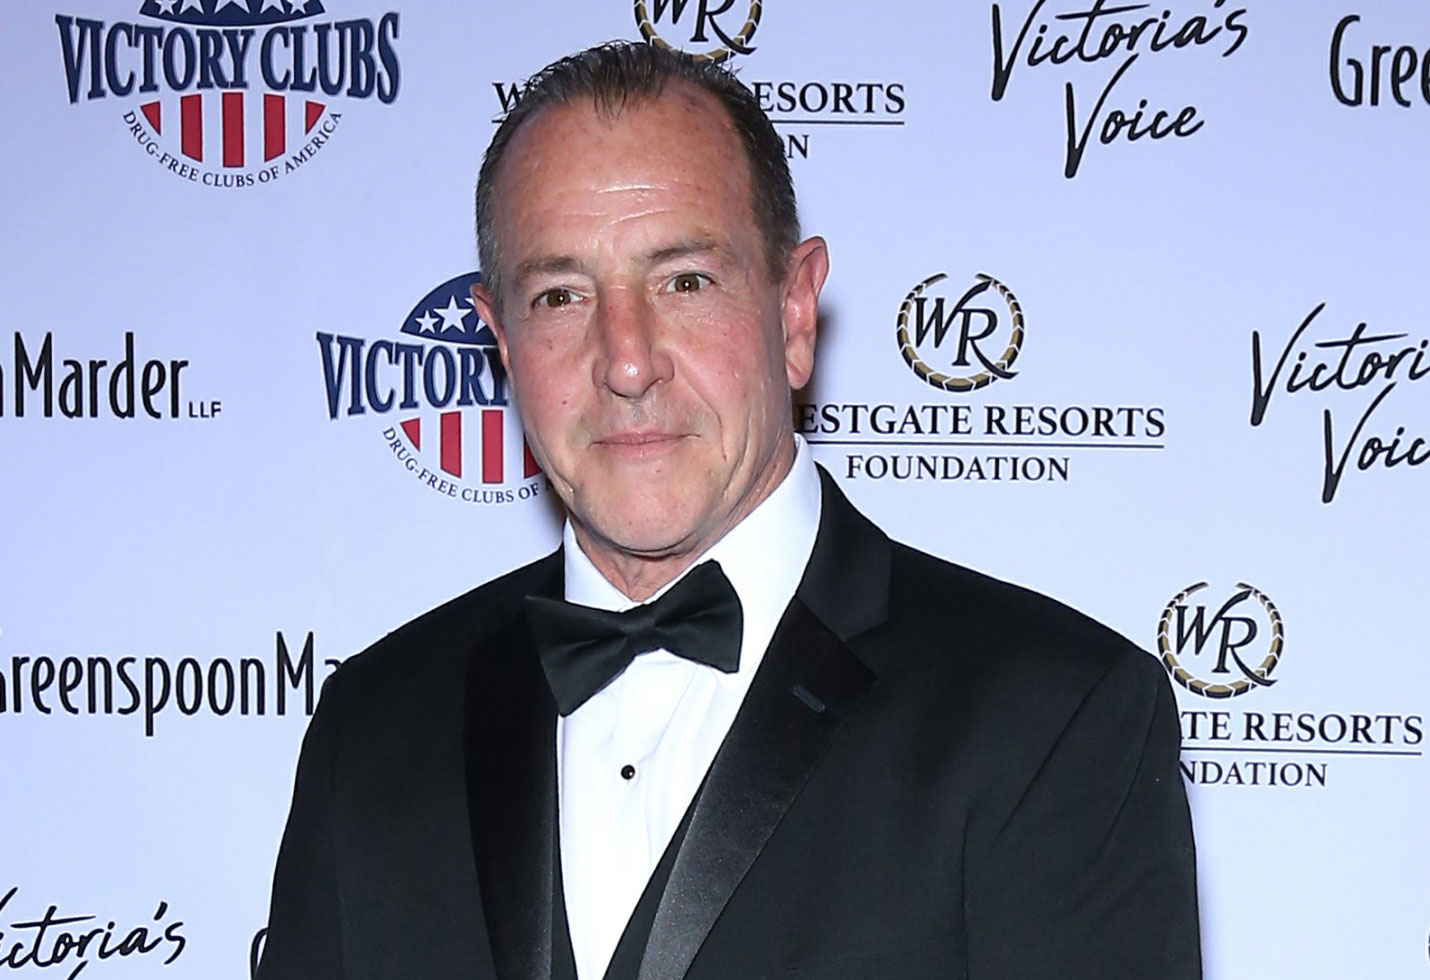 -PICTURED: Michael Lohan